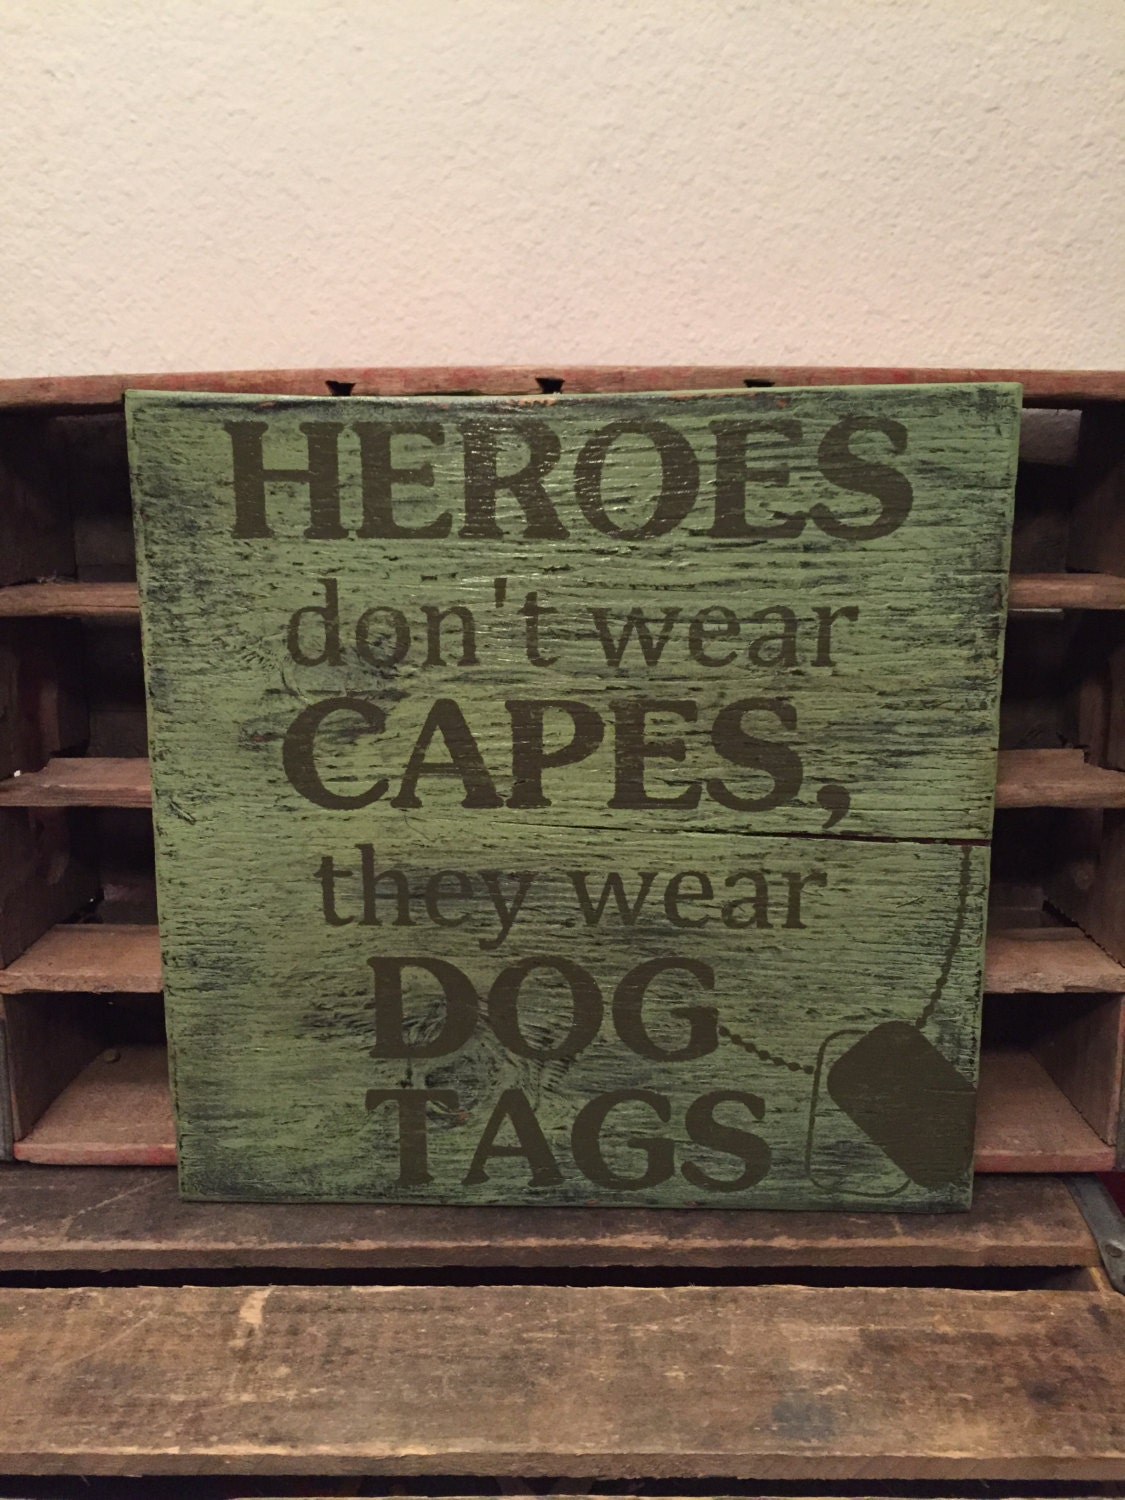 Military Sign Heroes Don't Wear Capes They Wear Dog Tags. Highschool Signs. Separation Signs. Kitchen Wall Signs. Medical Cause Signs Of Stroke. Train Signs Of Stroke. Music Notes Signs. Hazard Warning Signs. Water Lily Sign Signs Of Stroke